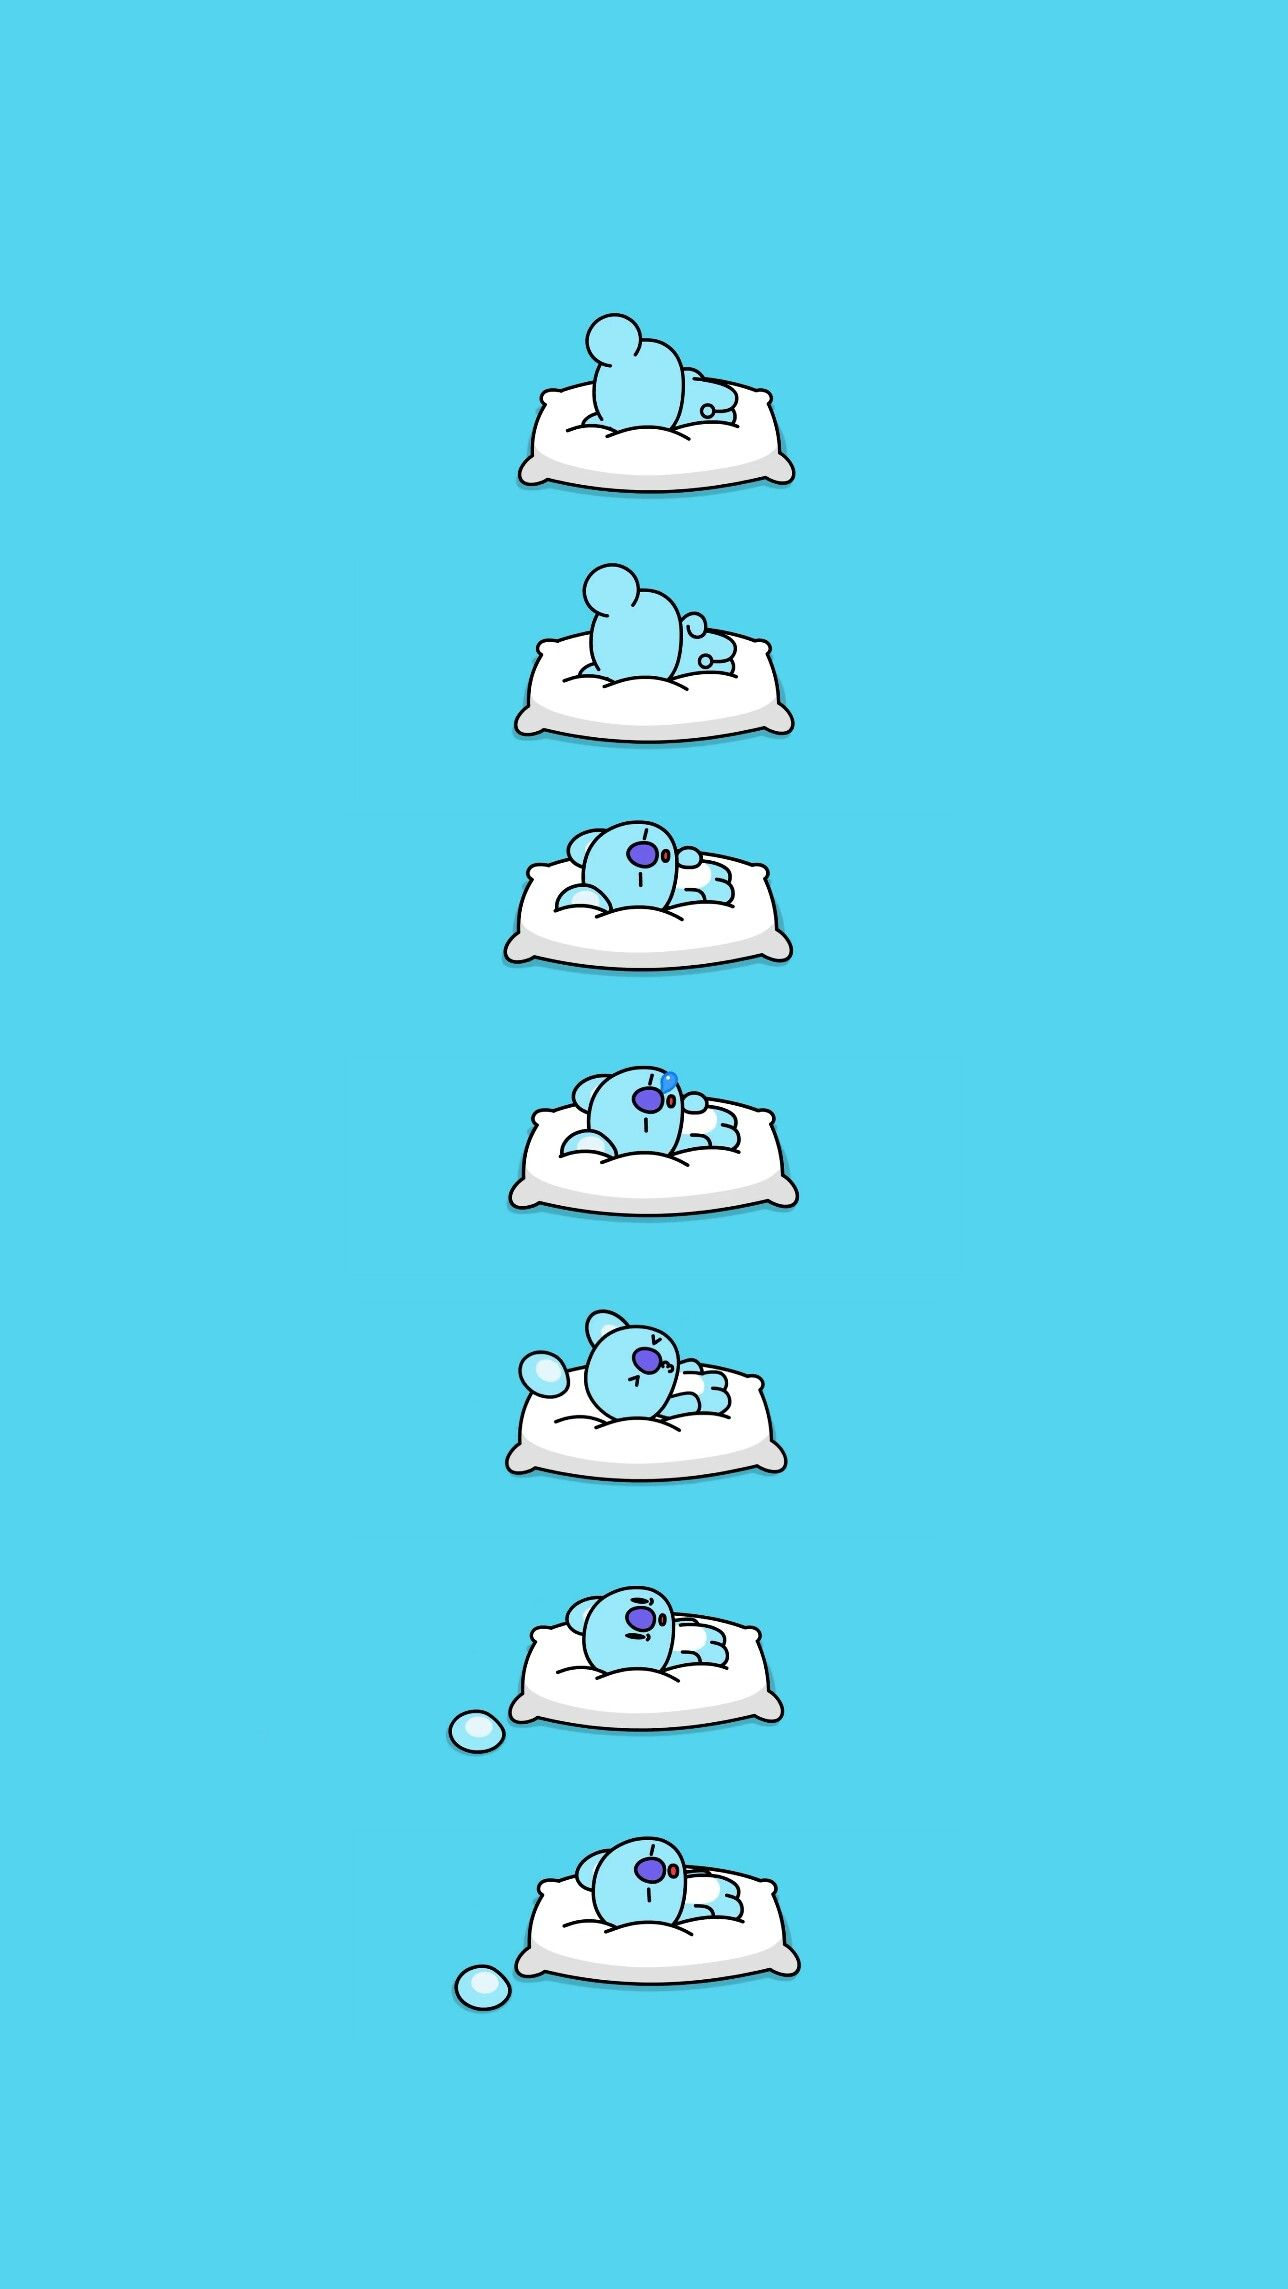 BTS BT21 Wallpaper KOYA pls make sure to follow me 1288x2289